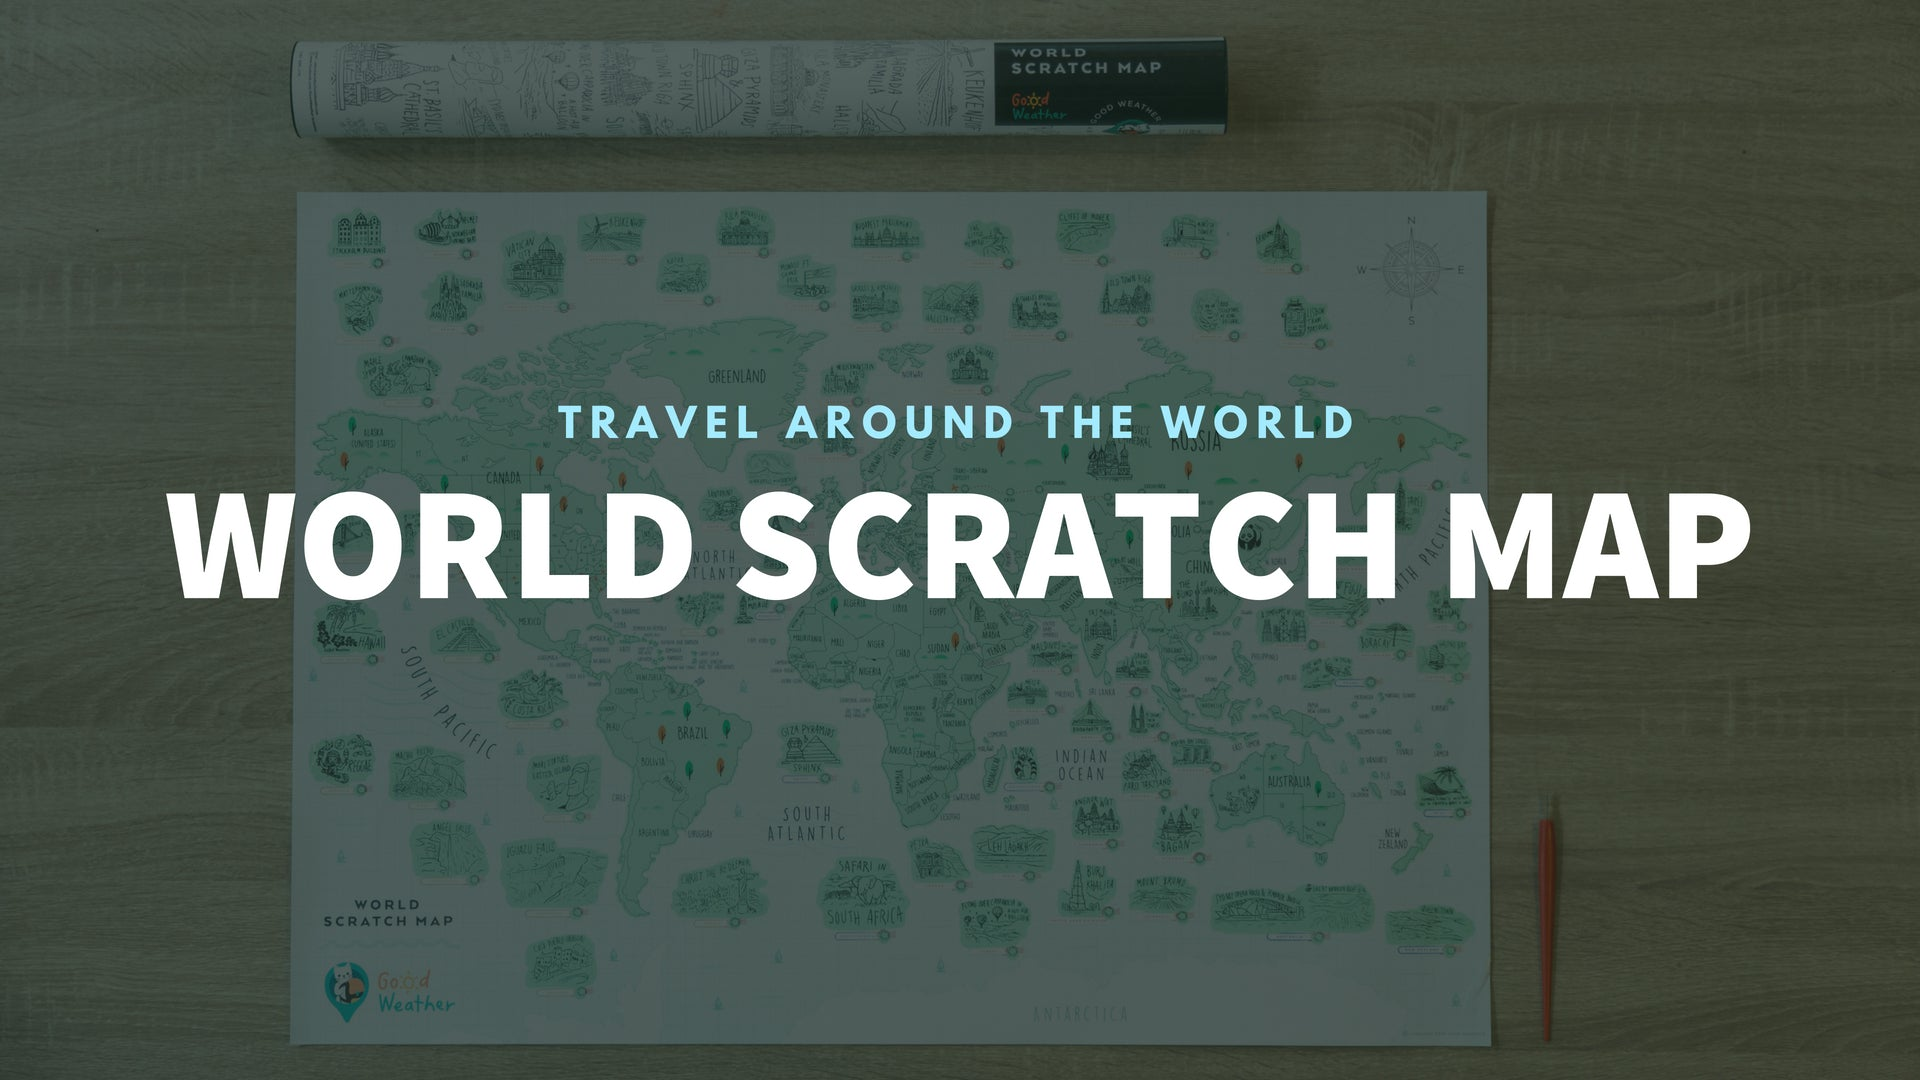 GadgetiCloud Good Weather World Scratch Travel Map Travel around the World deluxe luckies world travel map with pins europe uk rosegold small personalised Scratch Off Traveling World Map travelization 刮刮地圖 刮刮樂 世界地圖 刮刮世界地圖 banner